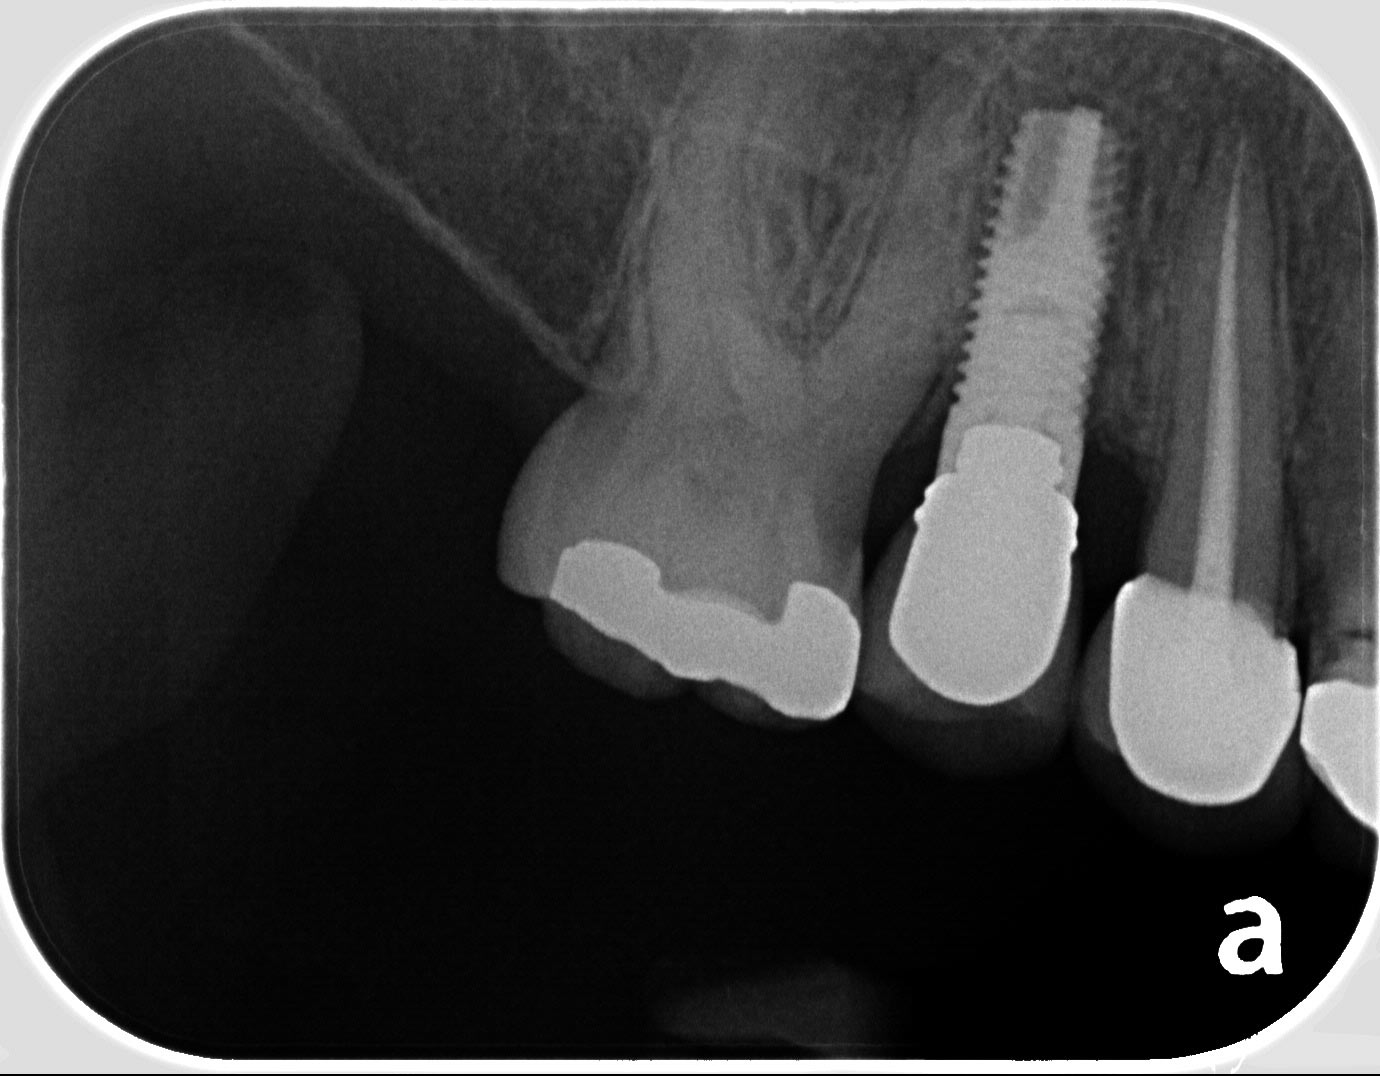 implant crown 2